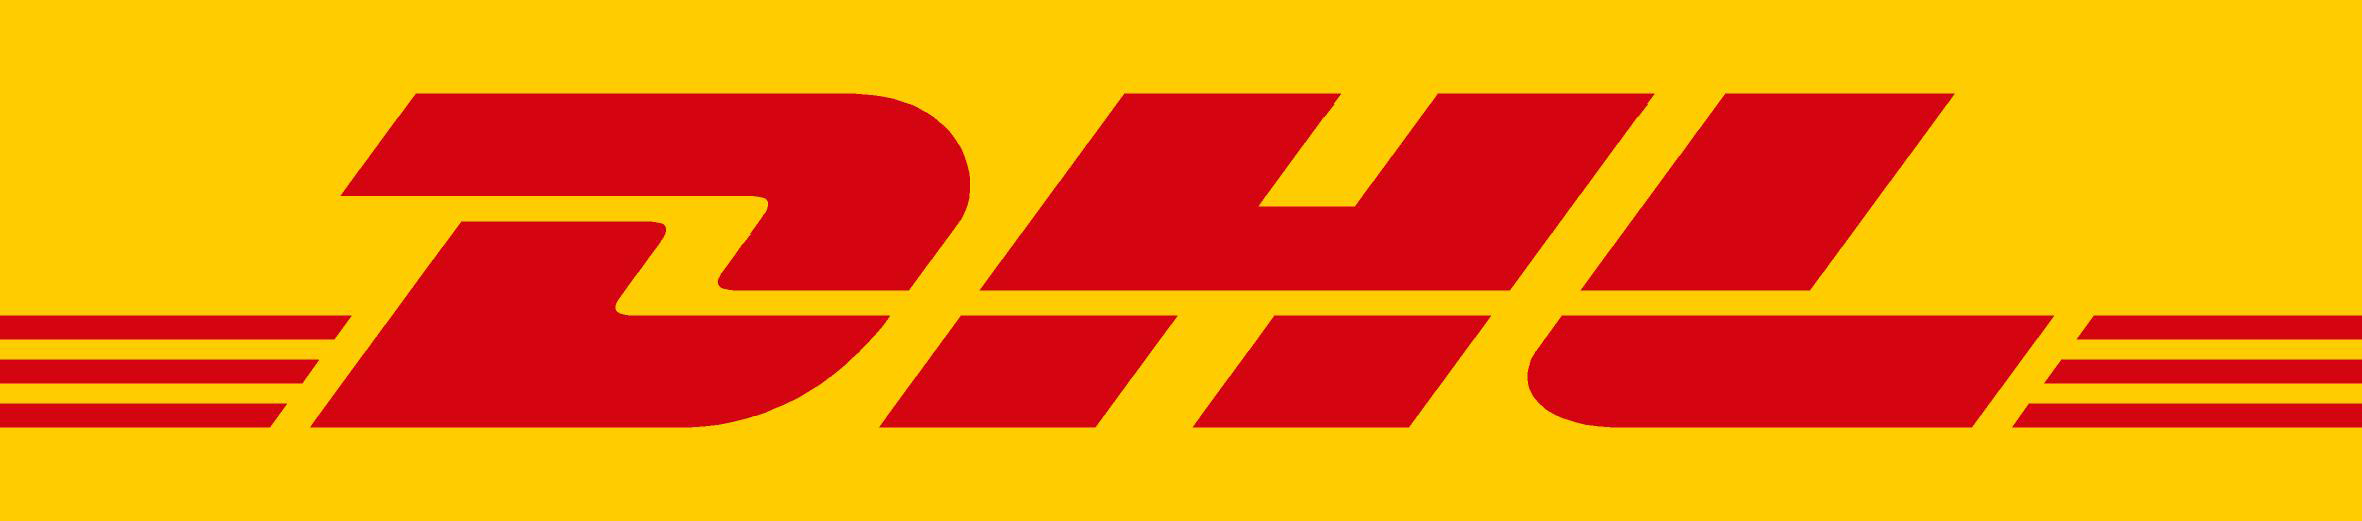 DHL Launches GreenLink Lead Logistics Provider Service